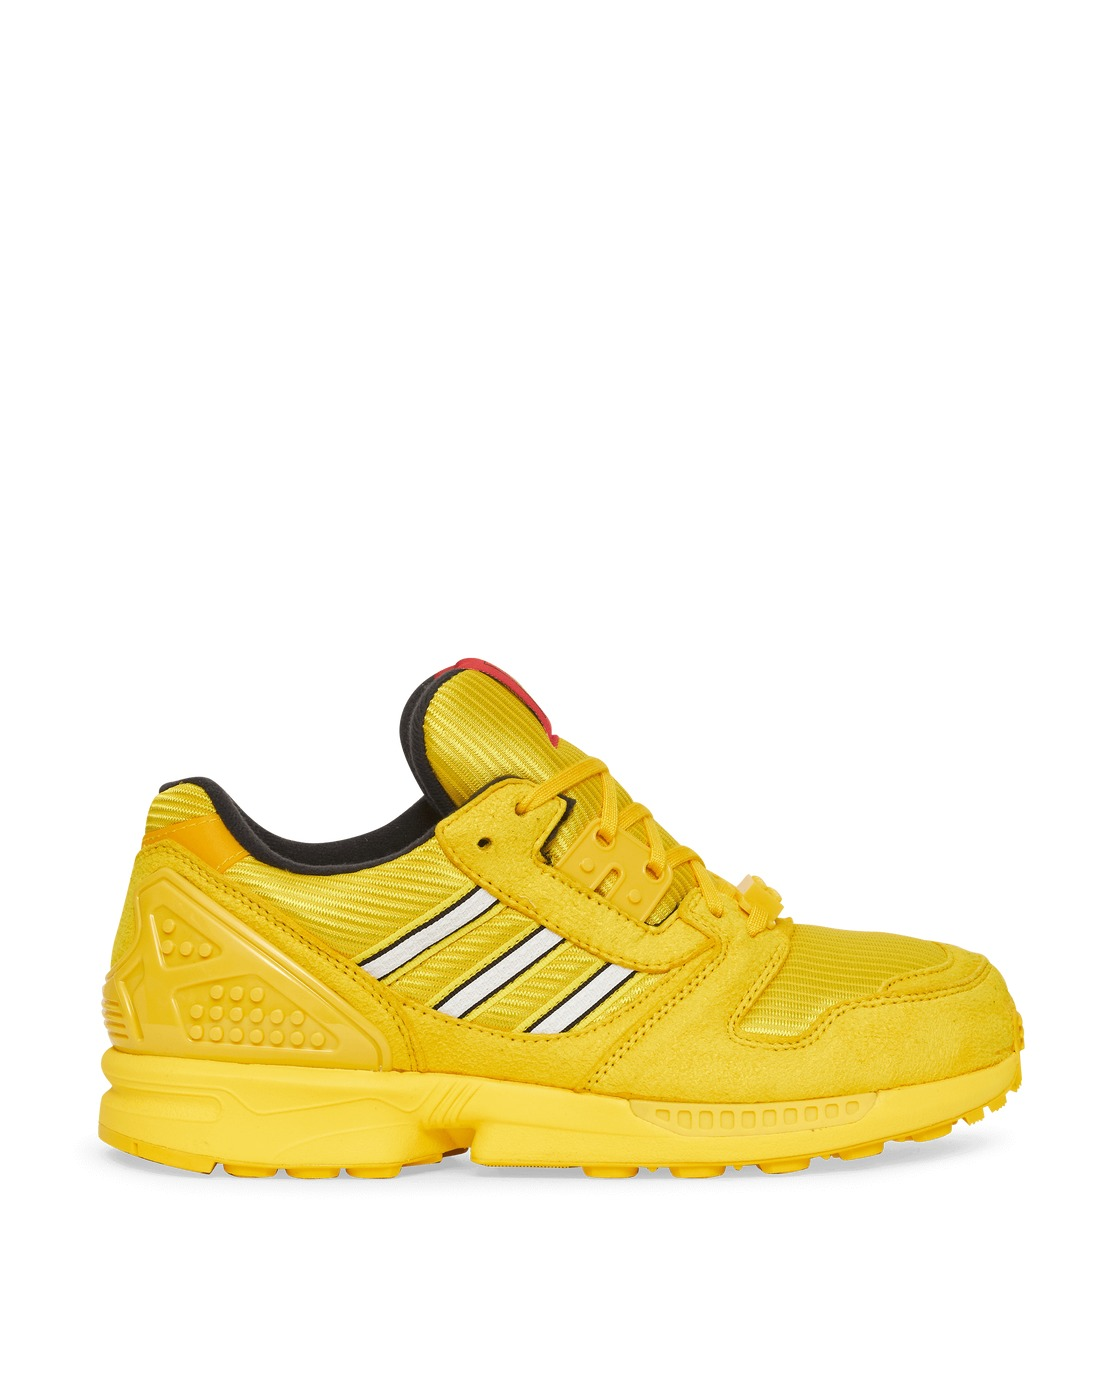 Photo: Adidas Originals Lego Zx 8000 Sneakers Eqt Yellow/Ftwr White